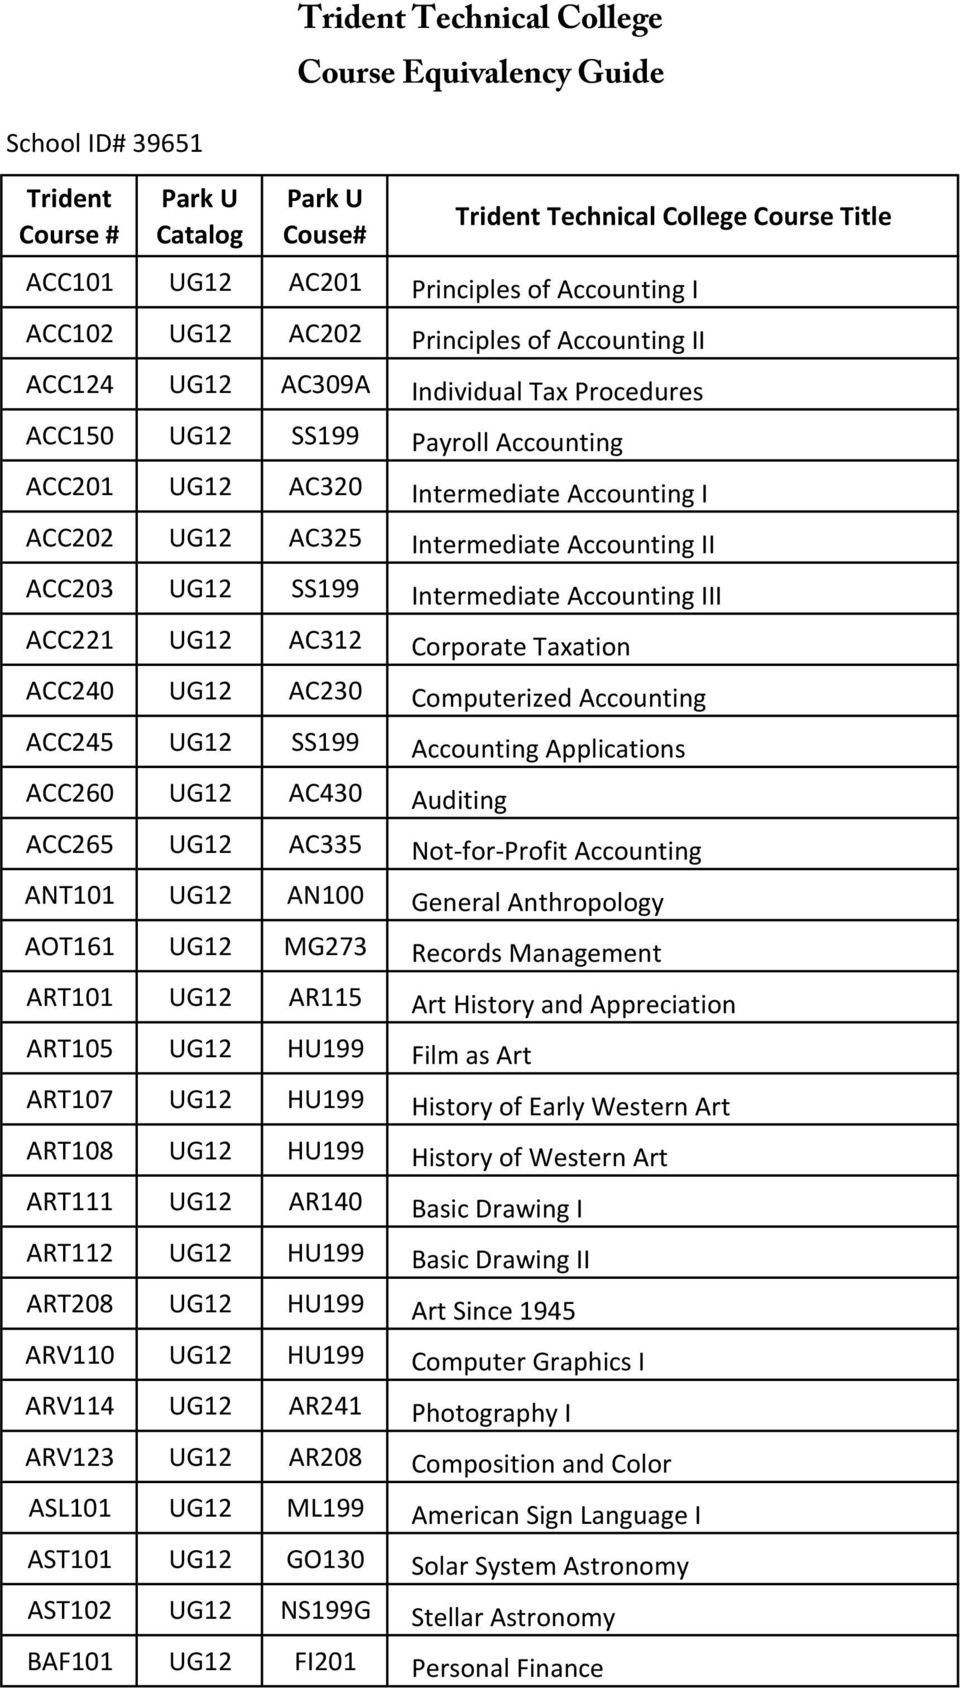 Intermediate Accounting II ACC203 UG12 SS199 Intermediate Accounting III ACC221 UG12 AC312 Corporate Taxation ACC240 UG12 AC230 Computerized Accounting ACC245 UG12 SS199 Accounting Applications